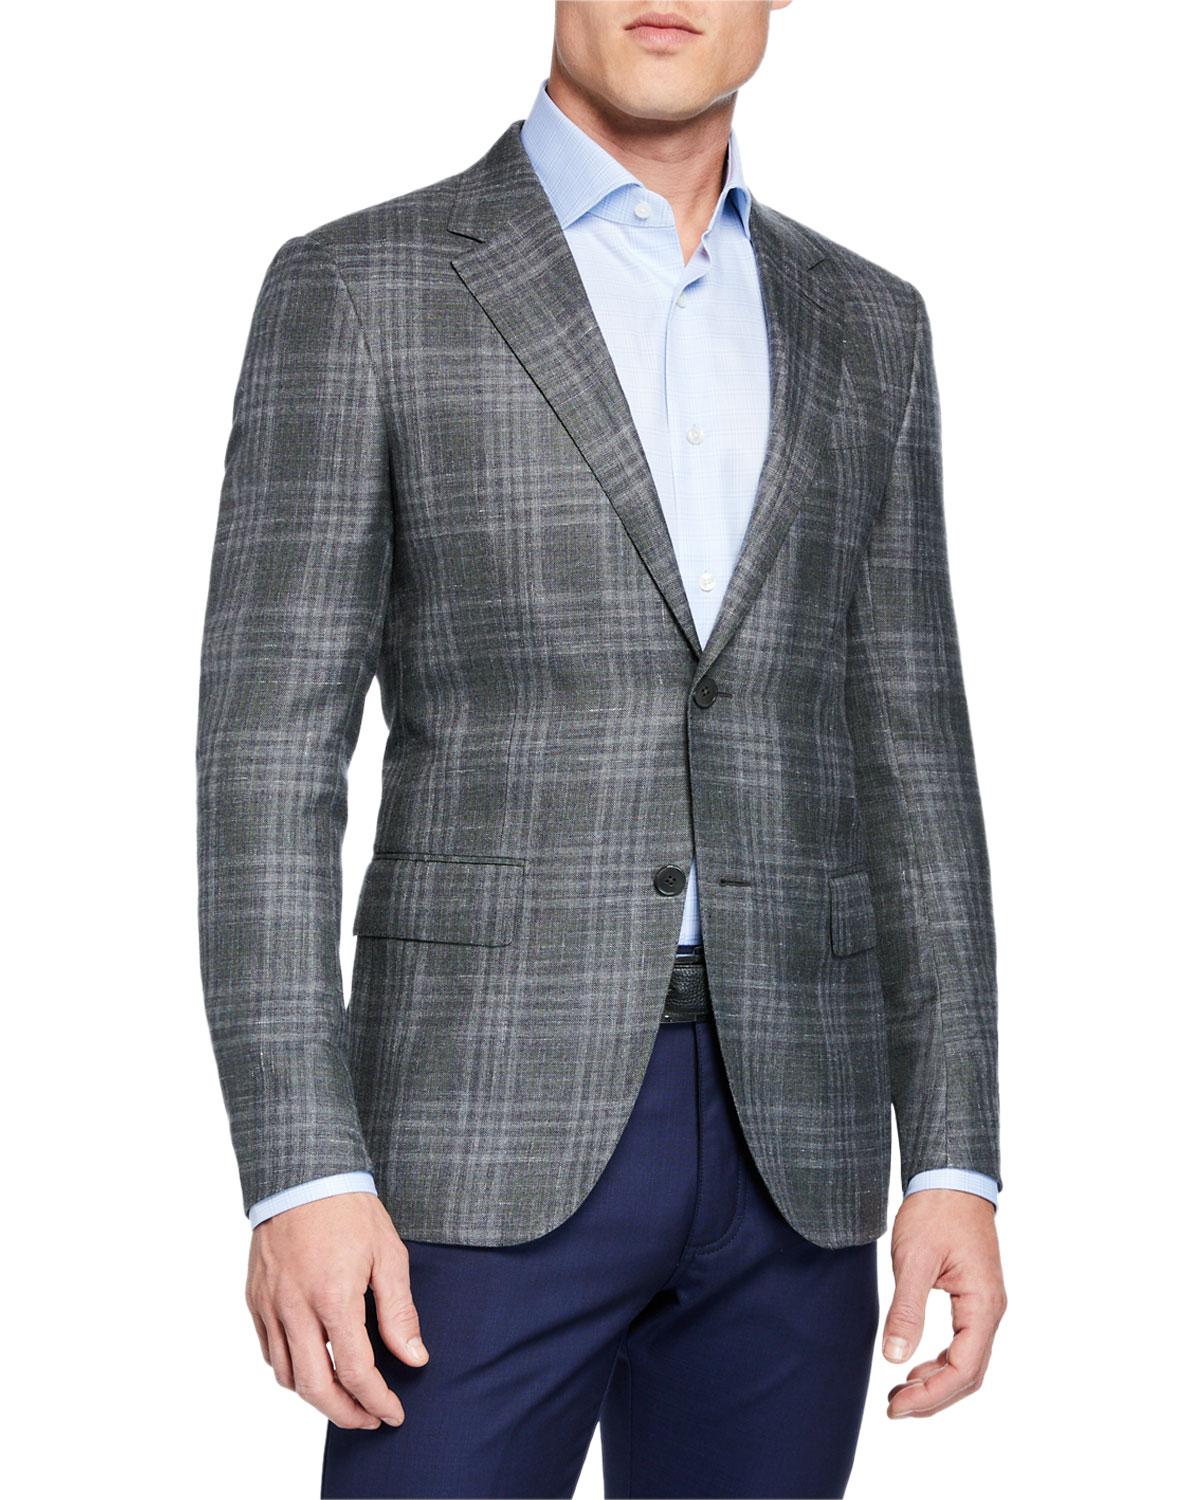 81500438 Men's Cashmere/Silk Plaid Sport Coat